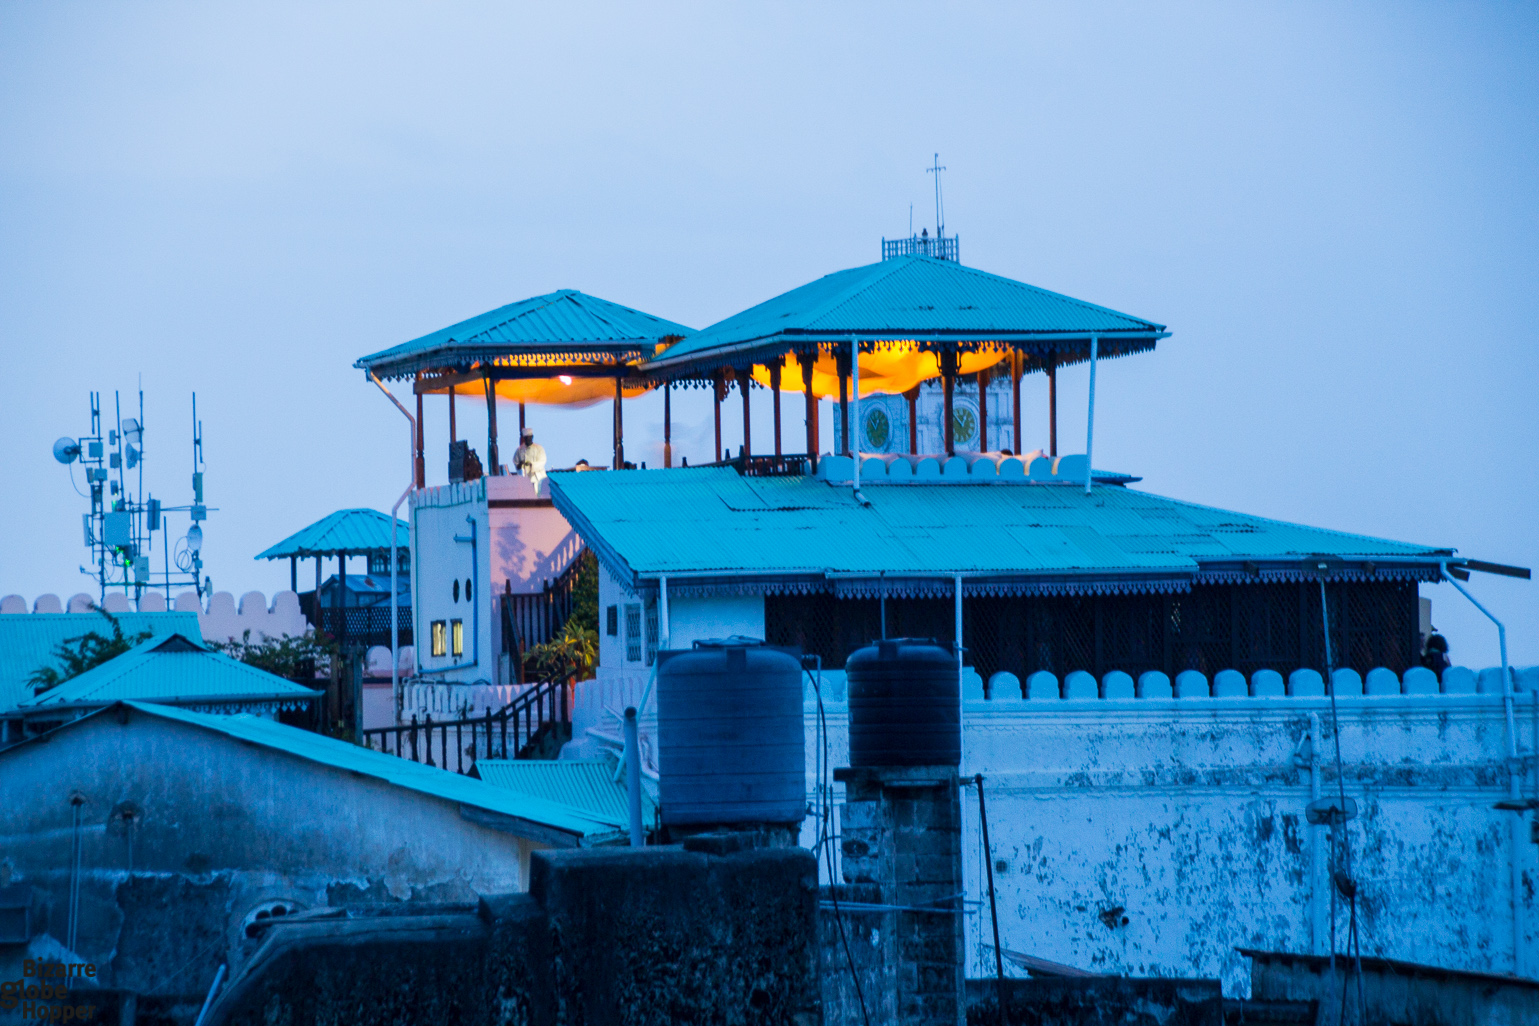 Sunset dinner upon the roofs of stone town zanzibar for City indian dining ltd t a spice trader